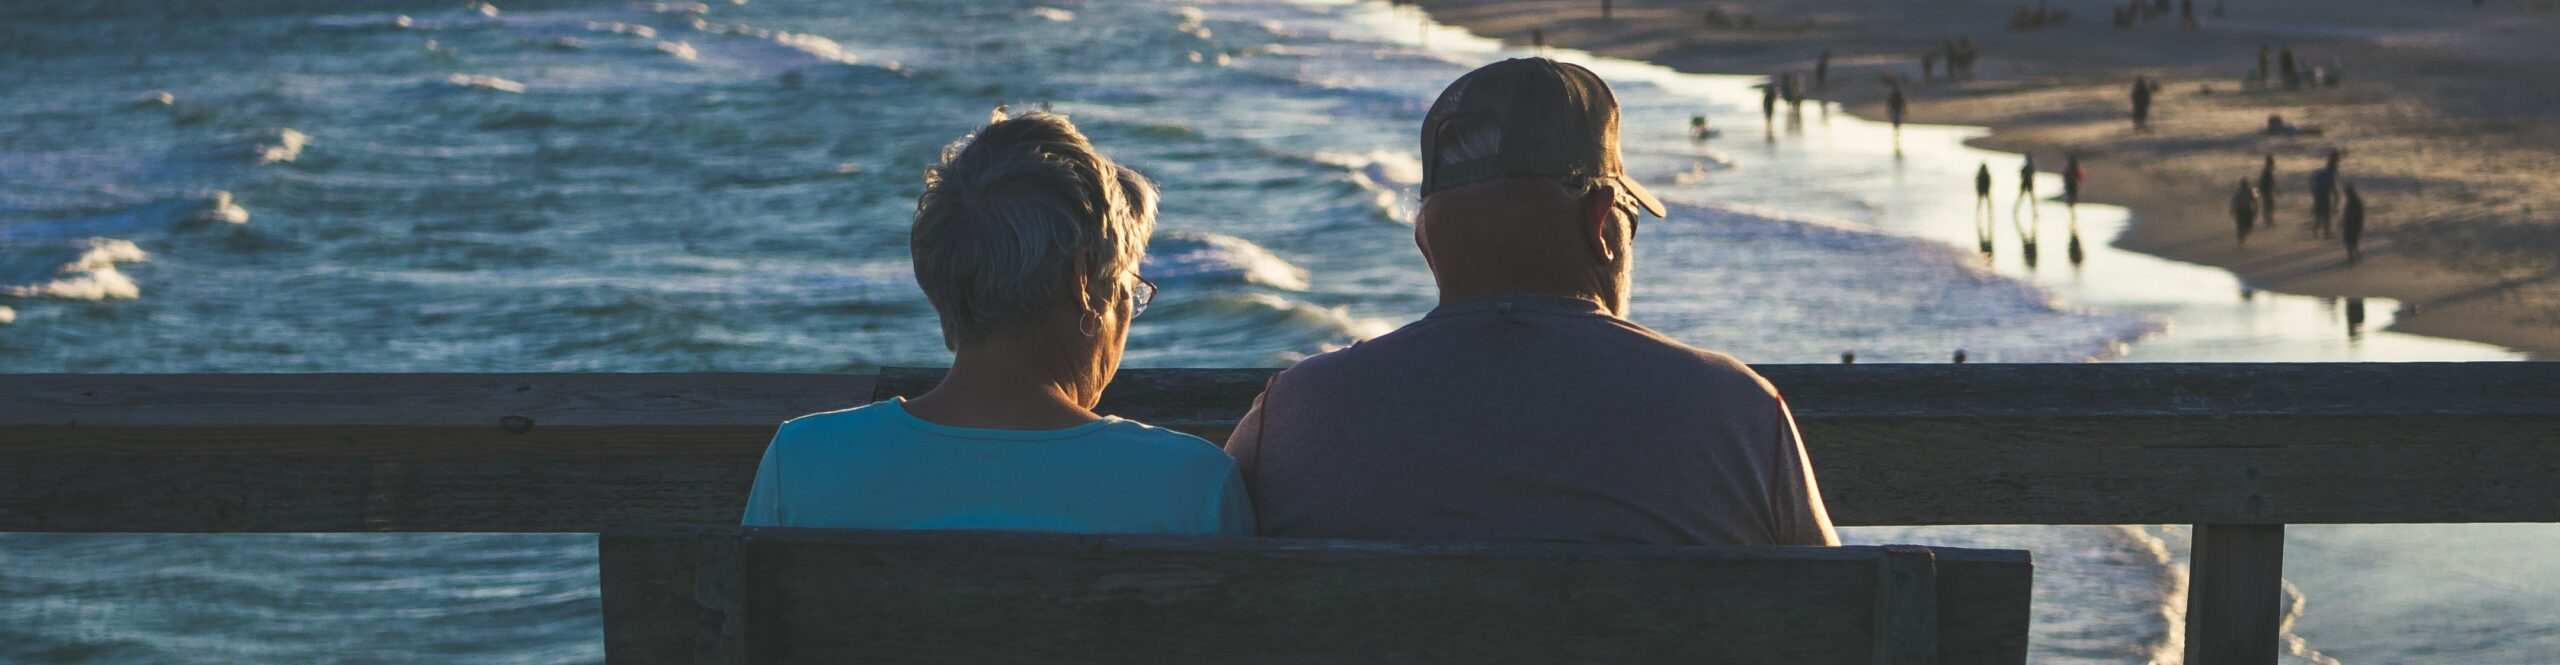 Retired pilgrims sit on a bench and at looks out at the ocean and beach.